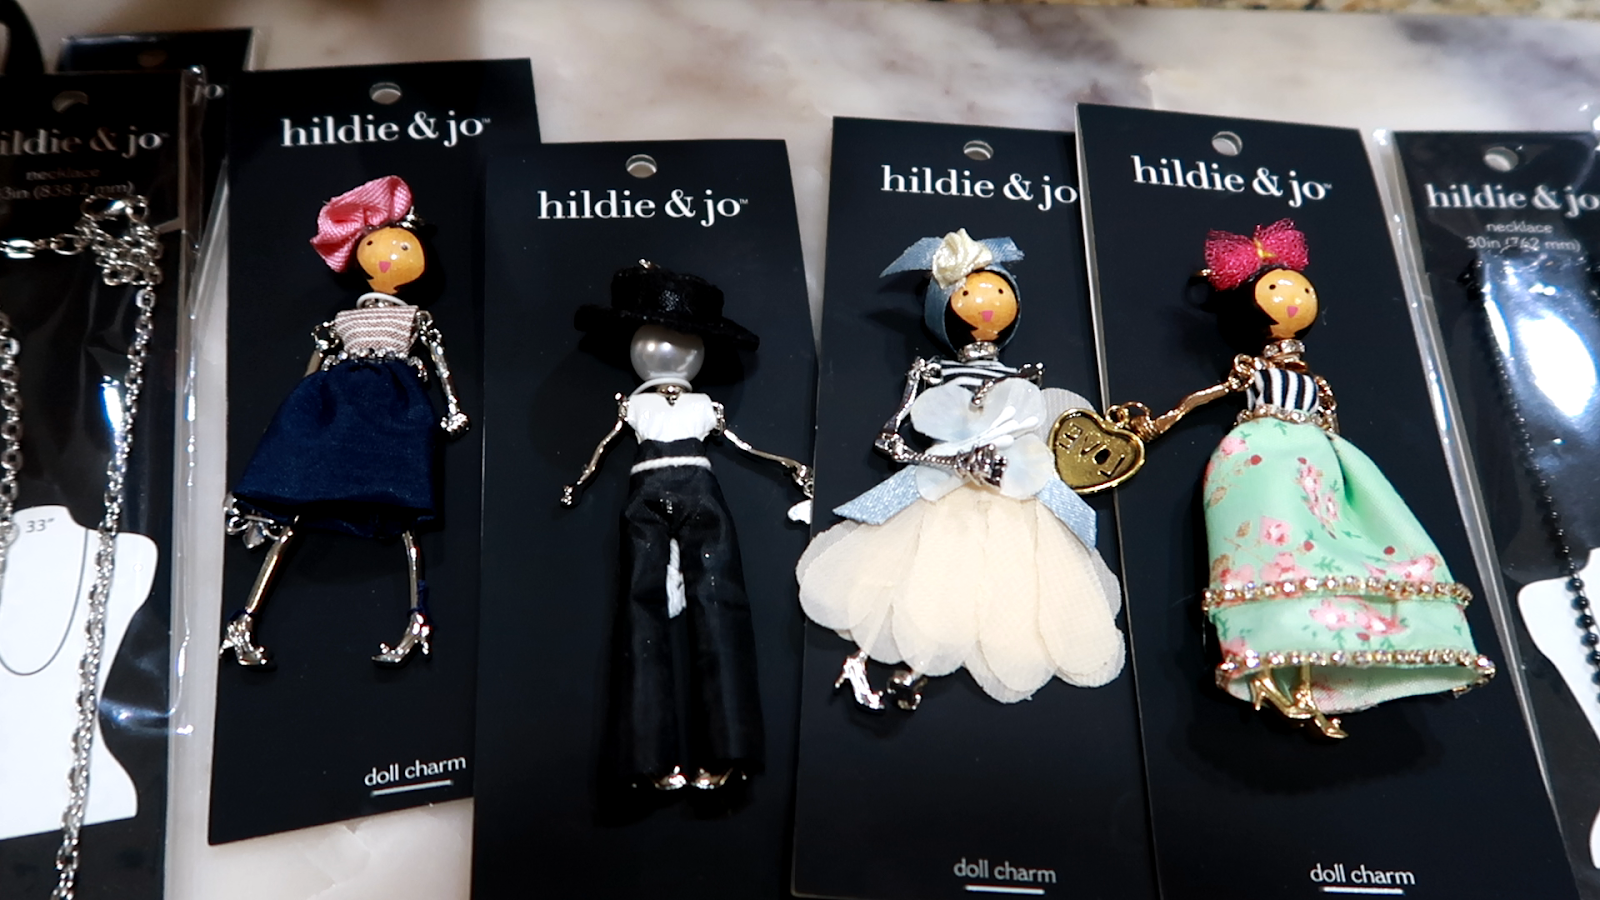 Image: Hildie and Jo Dolls purchased from Joann's craft store. Shred first on Bits and Babbles Blog